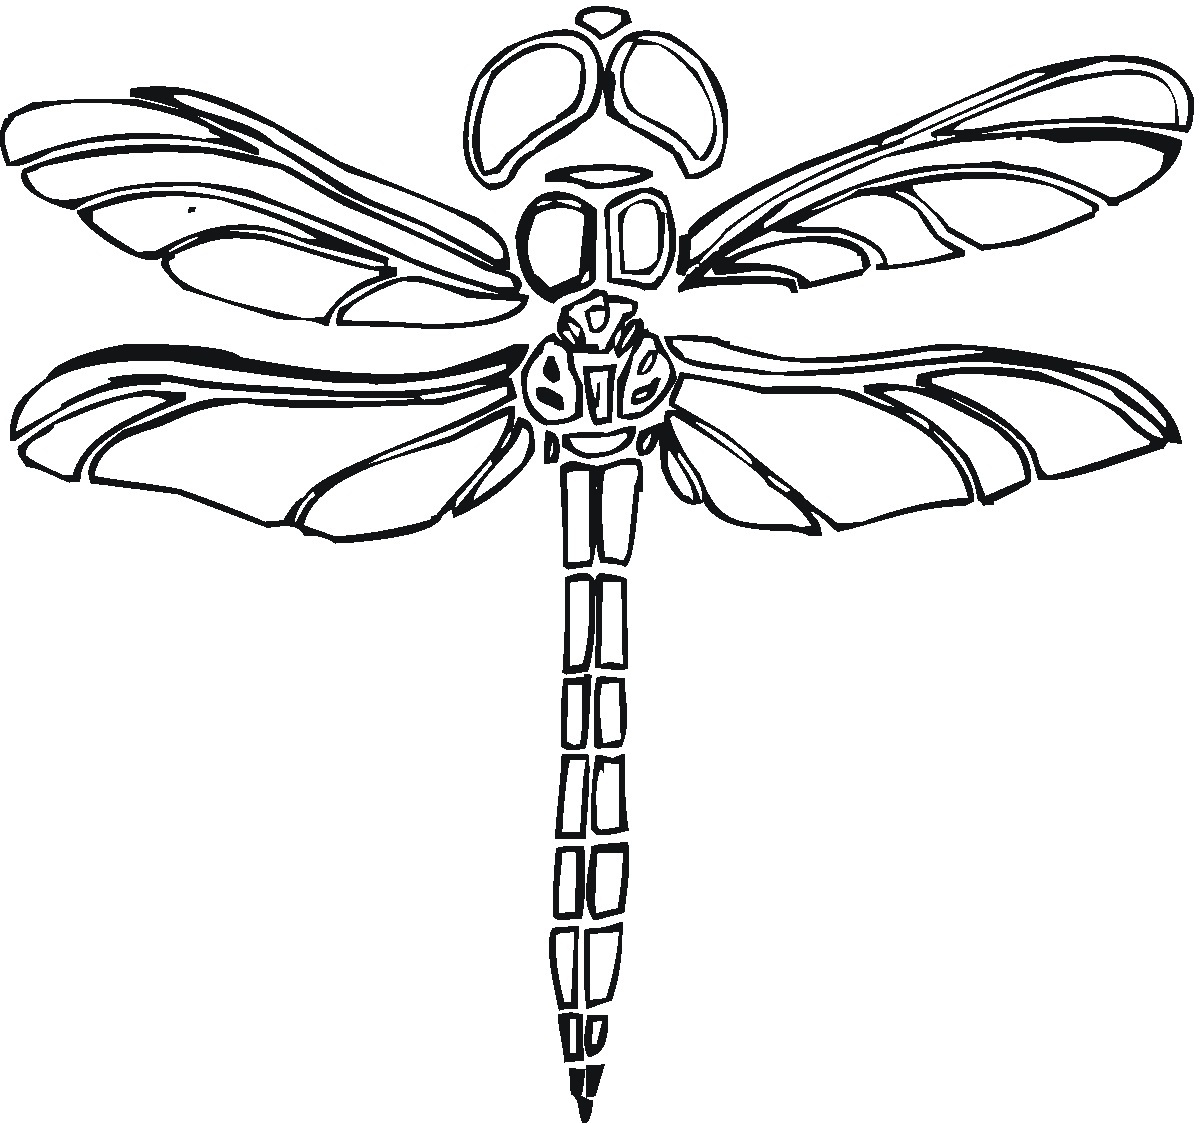 Dragonfly Coloring Book Images, Stock Photos & Vectors | Shutterstock | 1123x1200